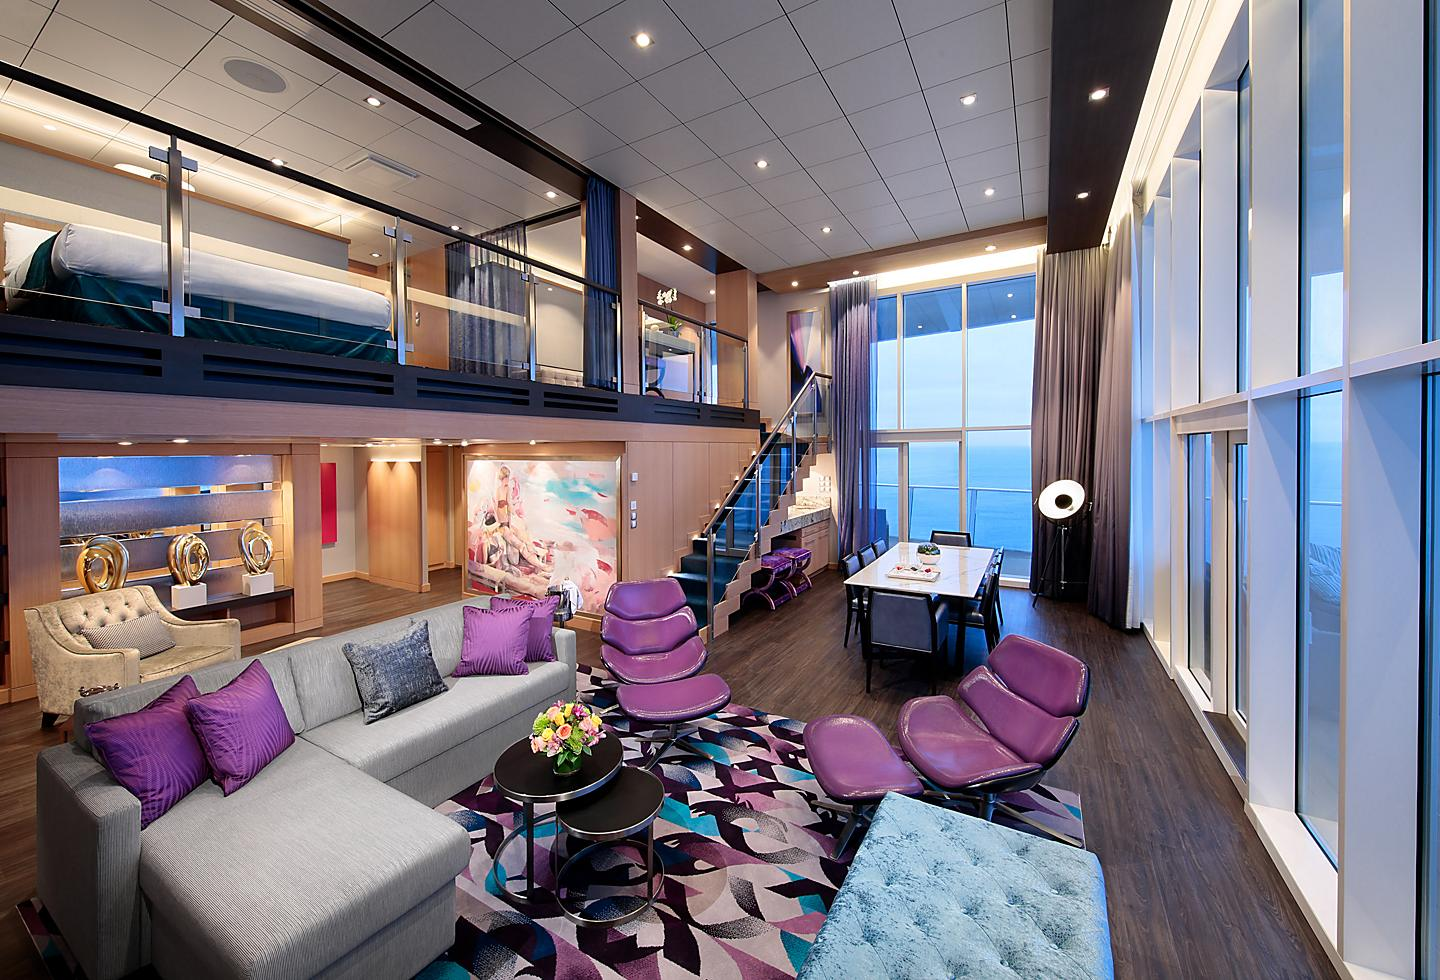 Loft Suite with Purple Furniture on Living Room